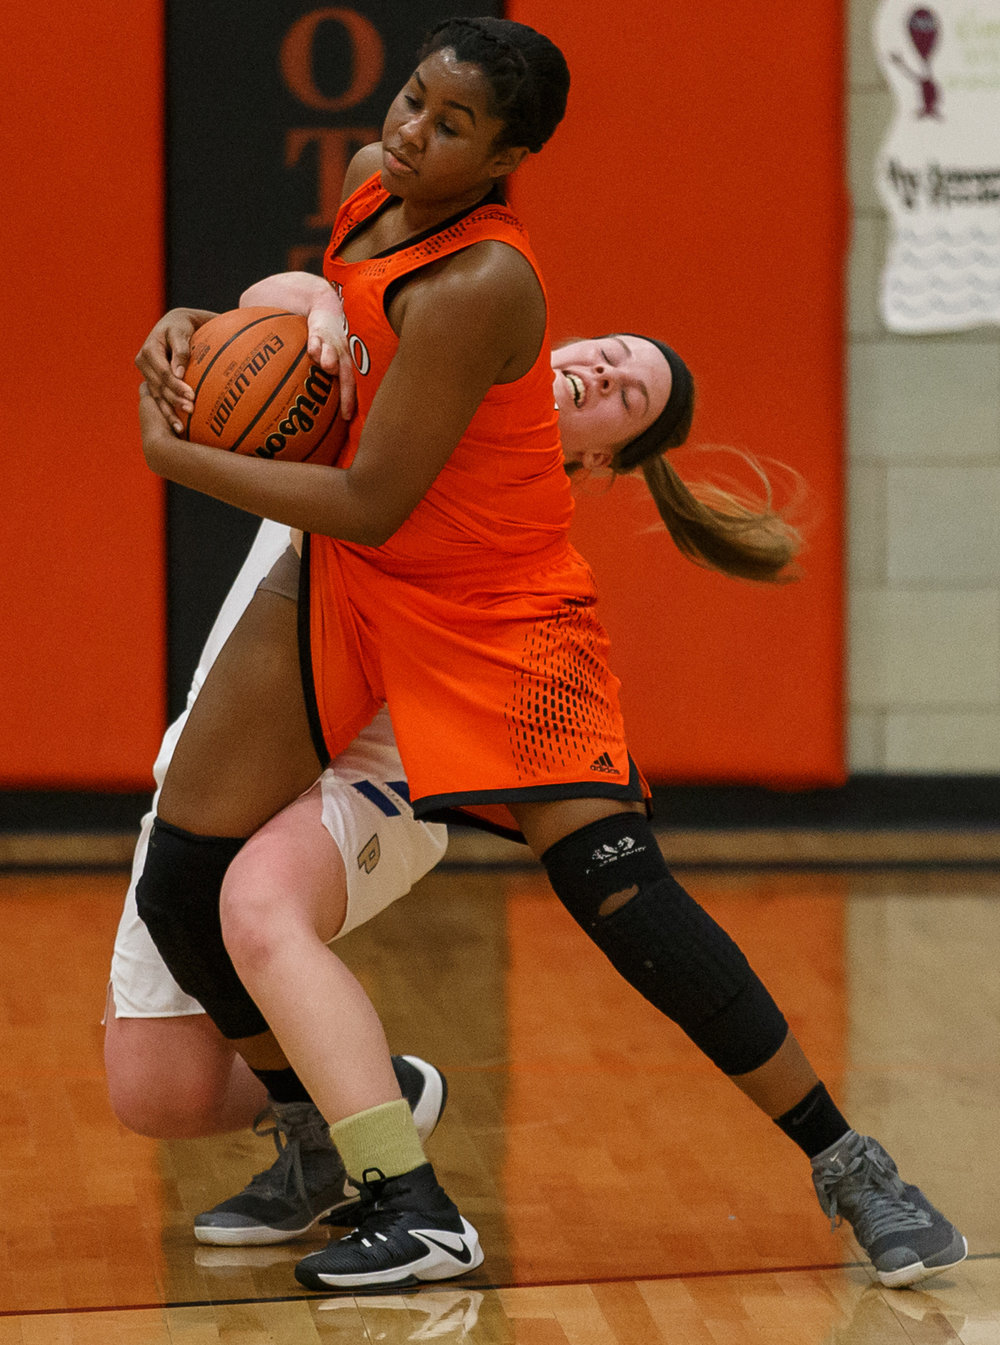 Camp Point Central's Brianna Hildebrand (33) is called for the foul as she gets tangled up with Hillsboro's Denzelle Moore (32) in the second quarter during the semifinals of the IHSA Class 2A Waverly Sectional at Waverly Elementary School, Monday, Feb. 13, 2017, in Waverly, Ill. [Justin L. Fowler/The State Journal-Register]